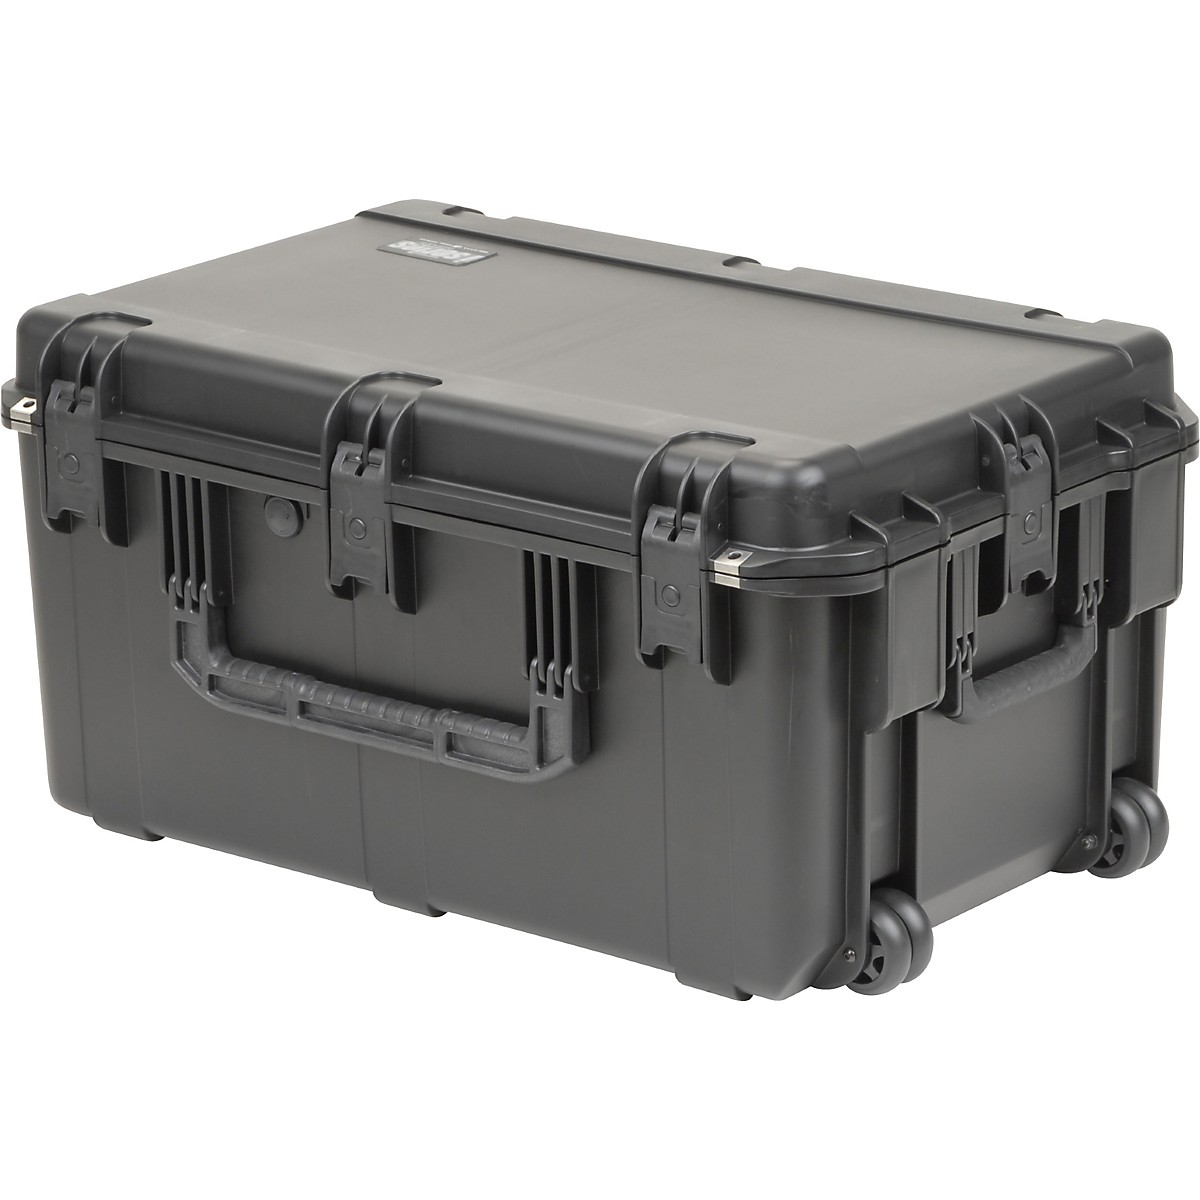 SKB 3I-2918-14B - Military Standard Waterproof Case with Wheels